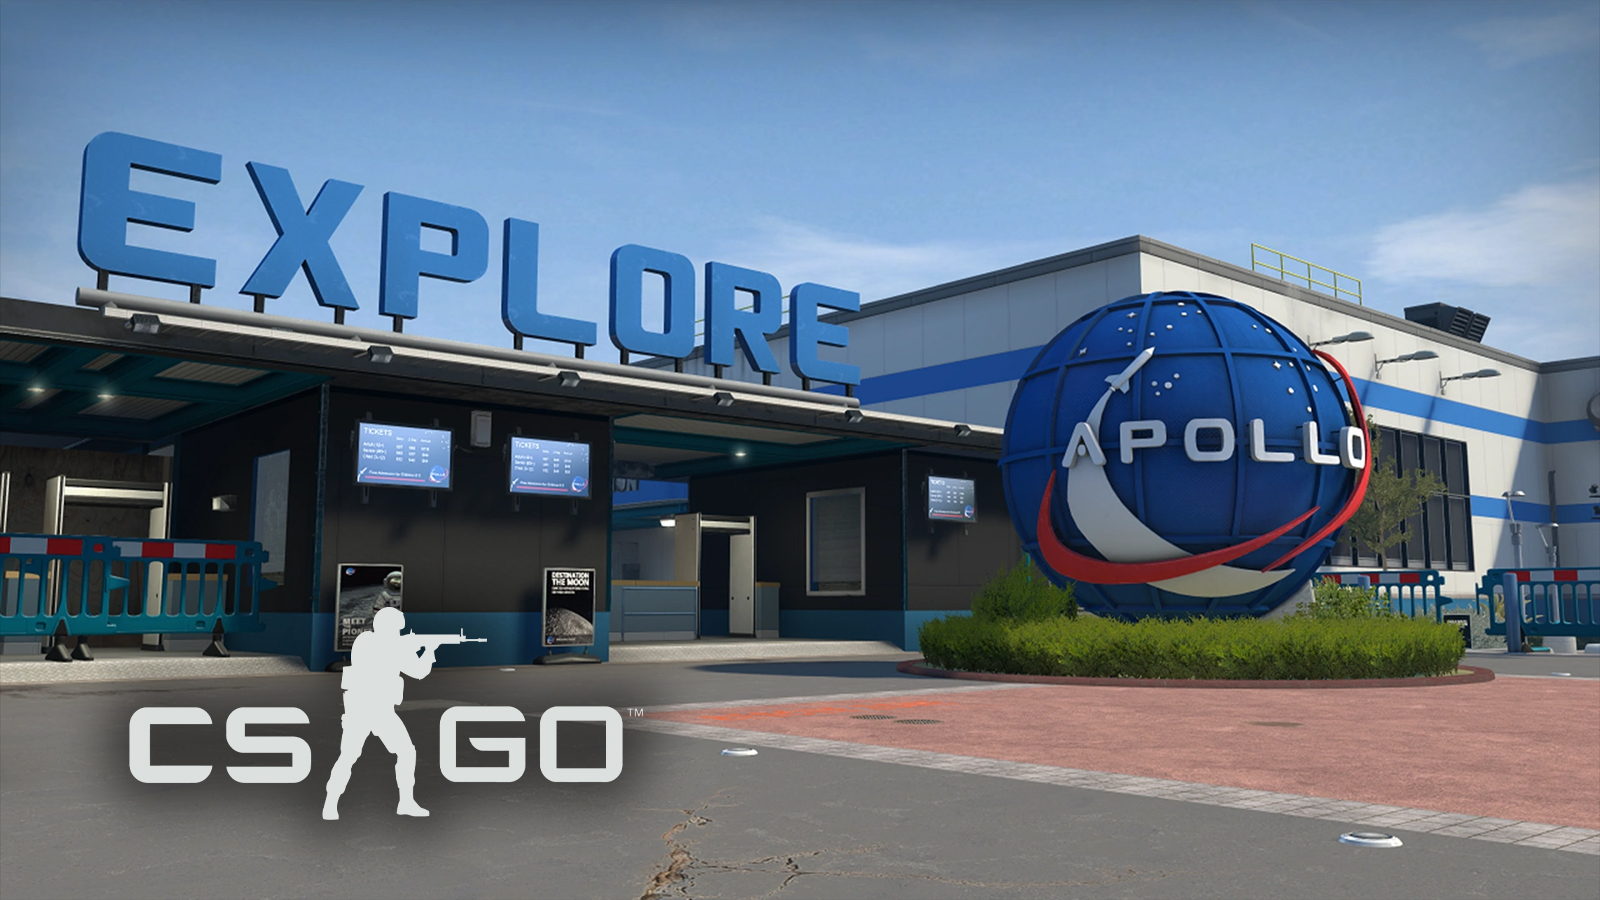 Apollo in CS:GO